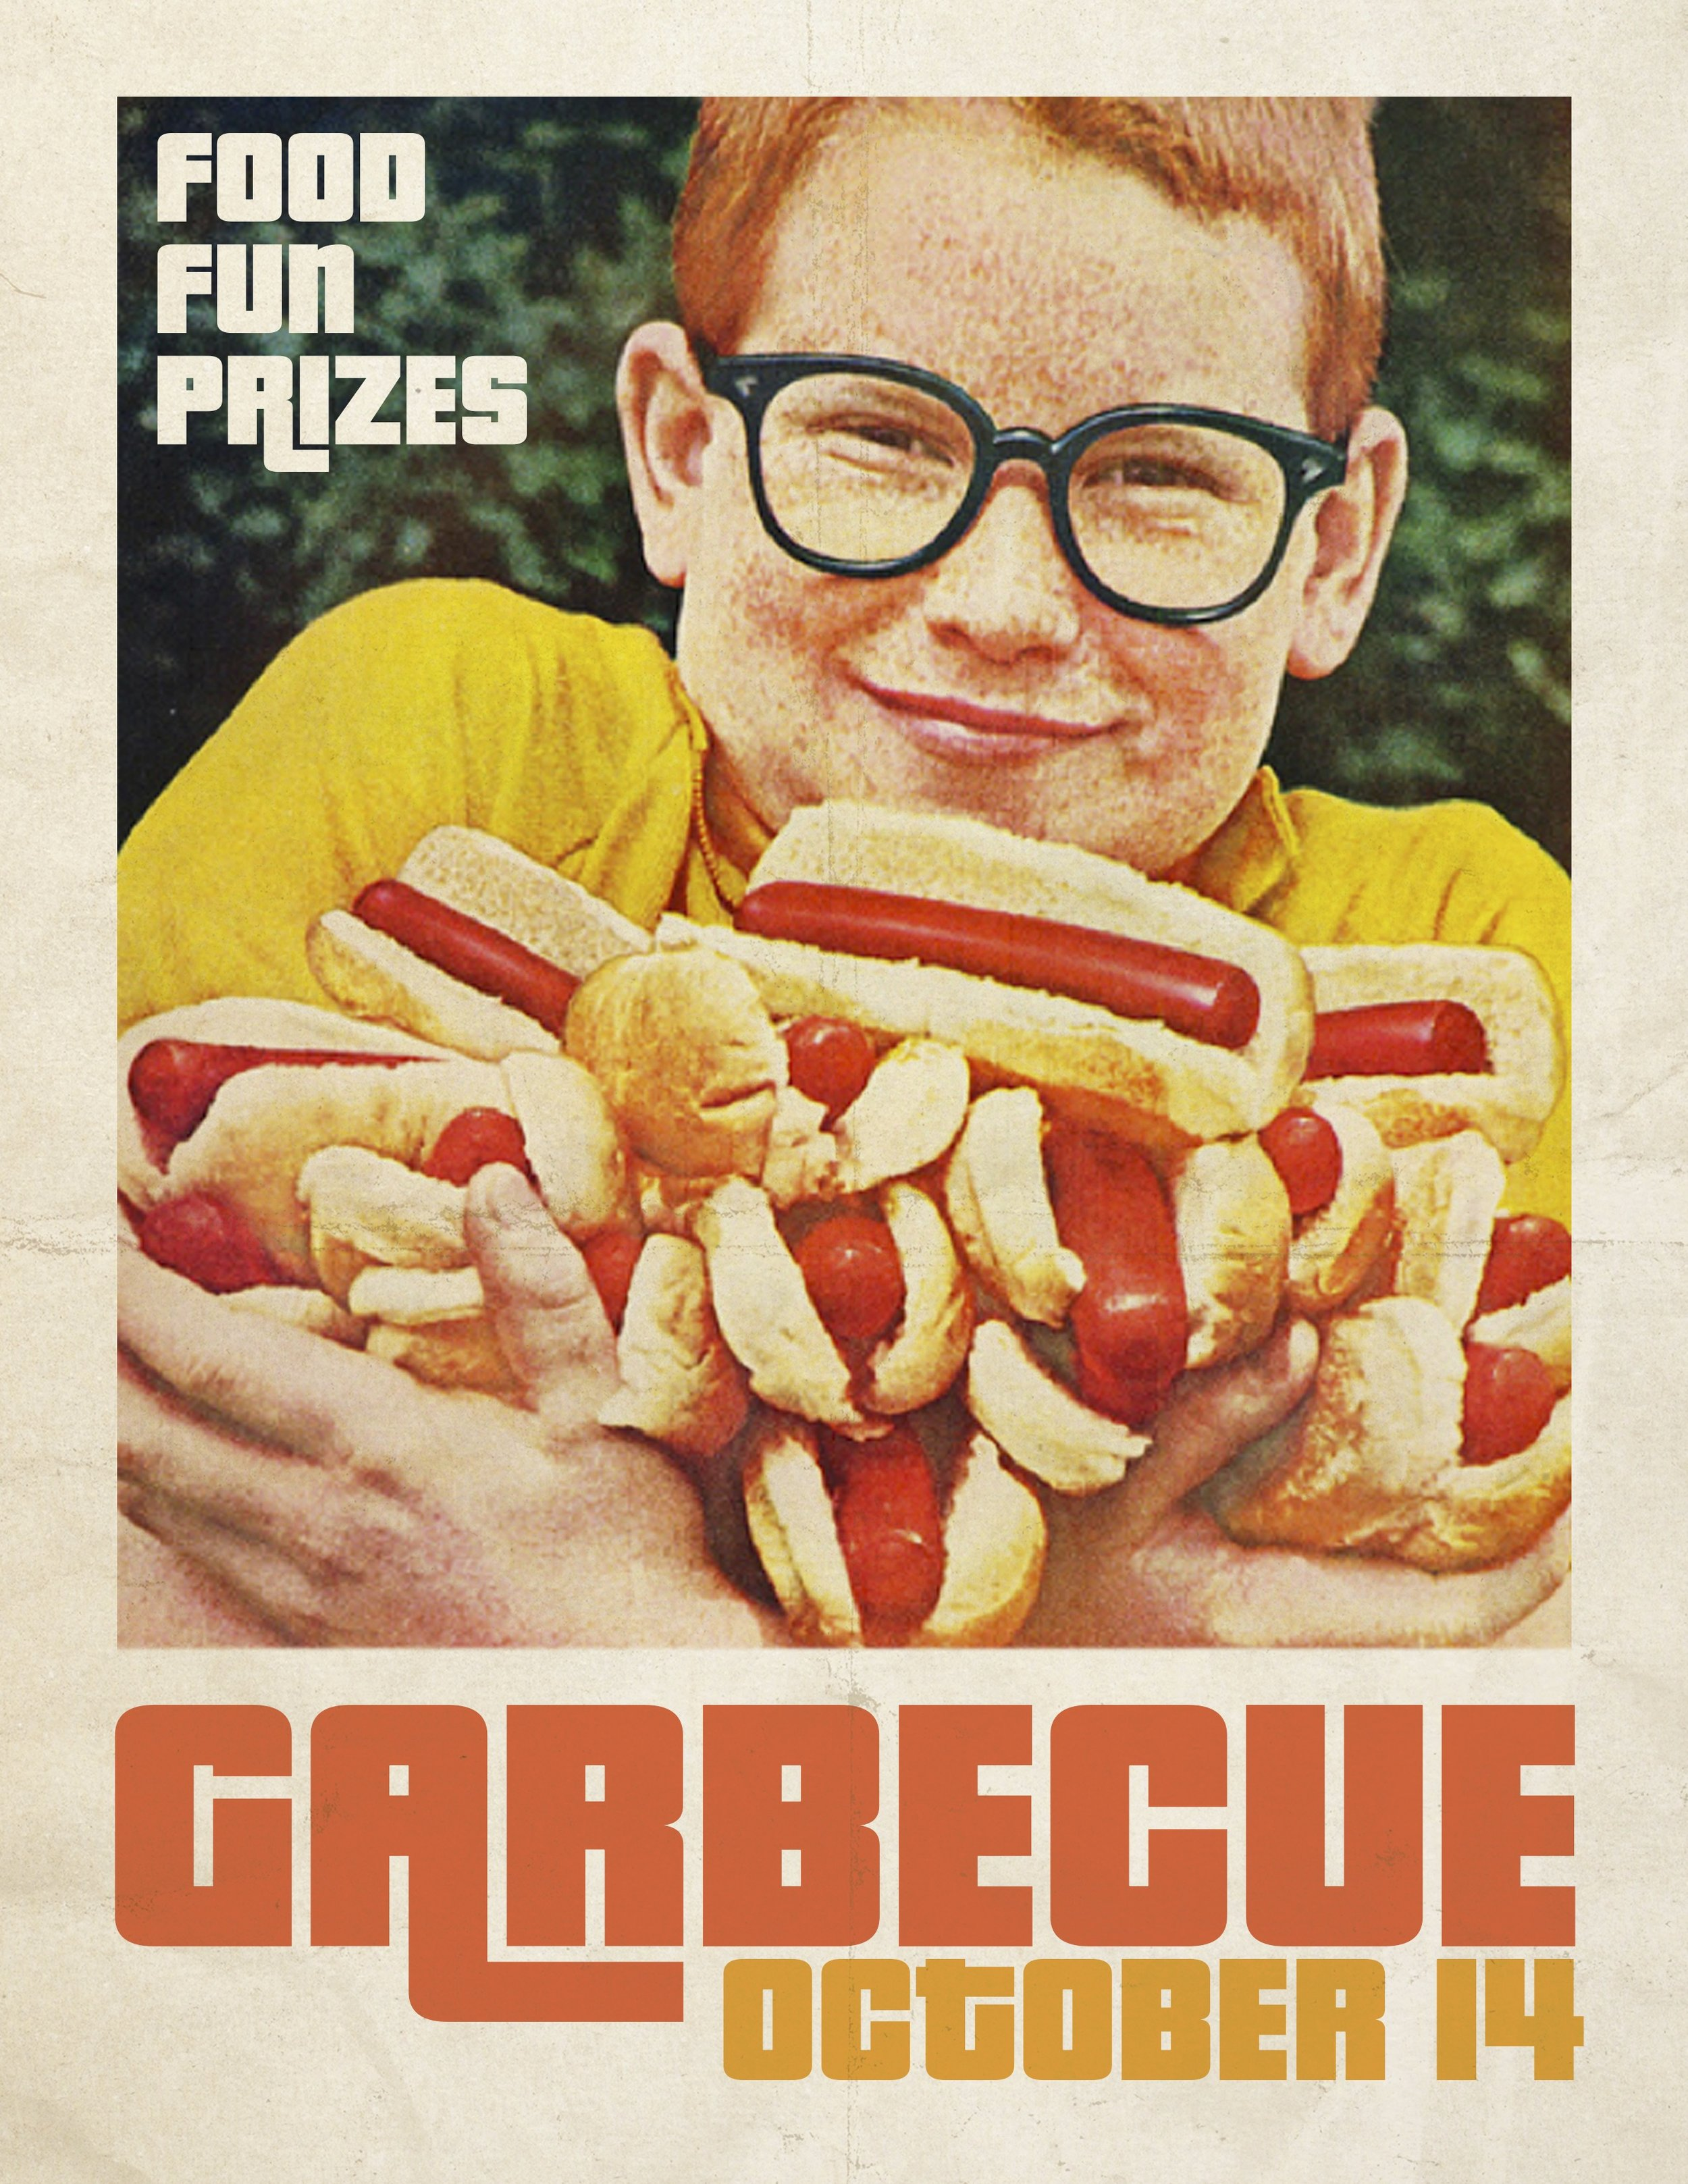 GARBECUE-(10.14.2016).jpeg